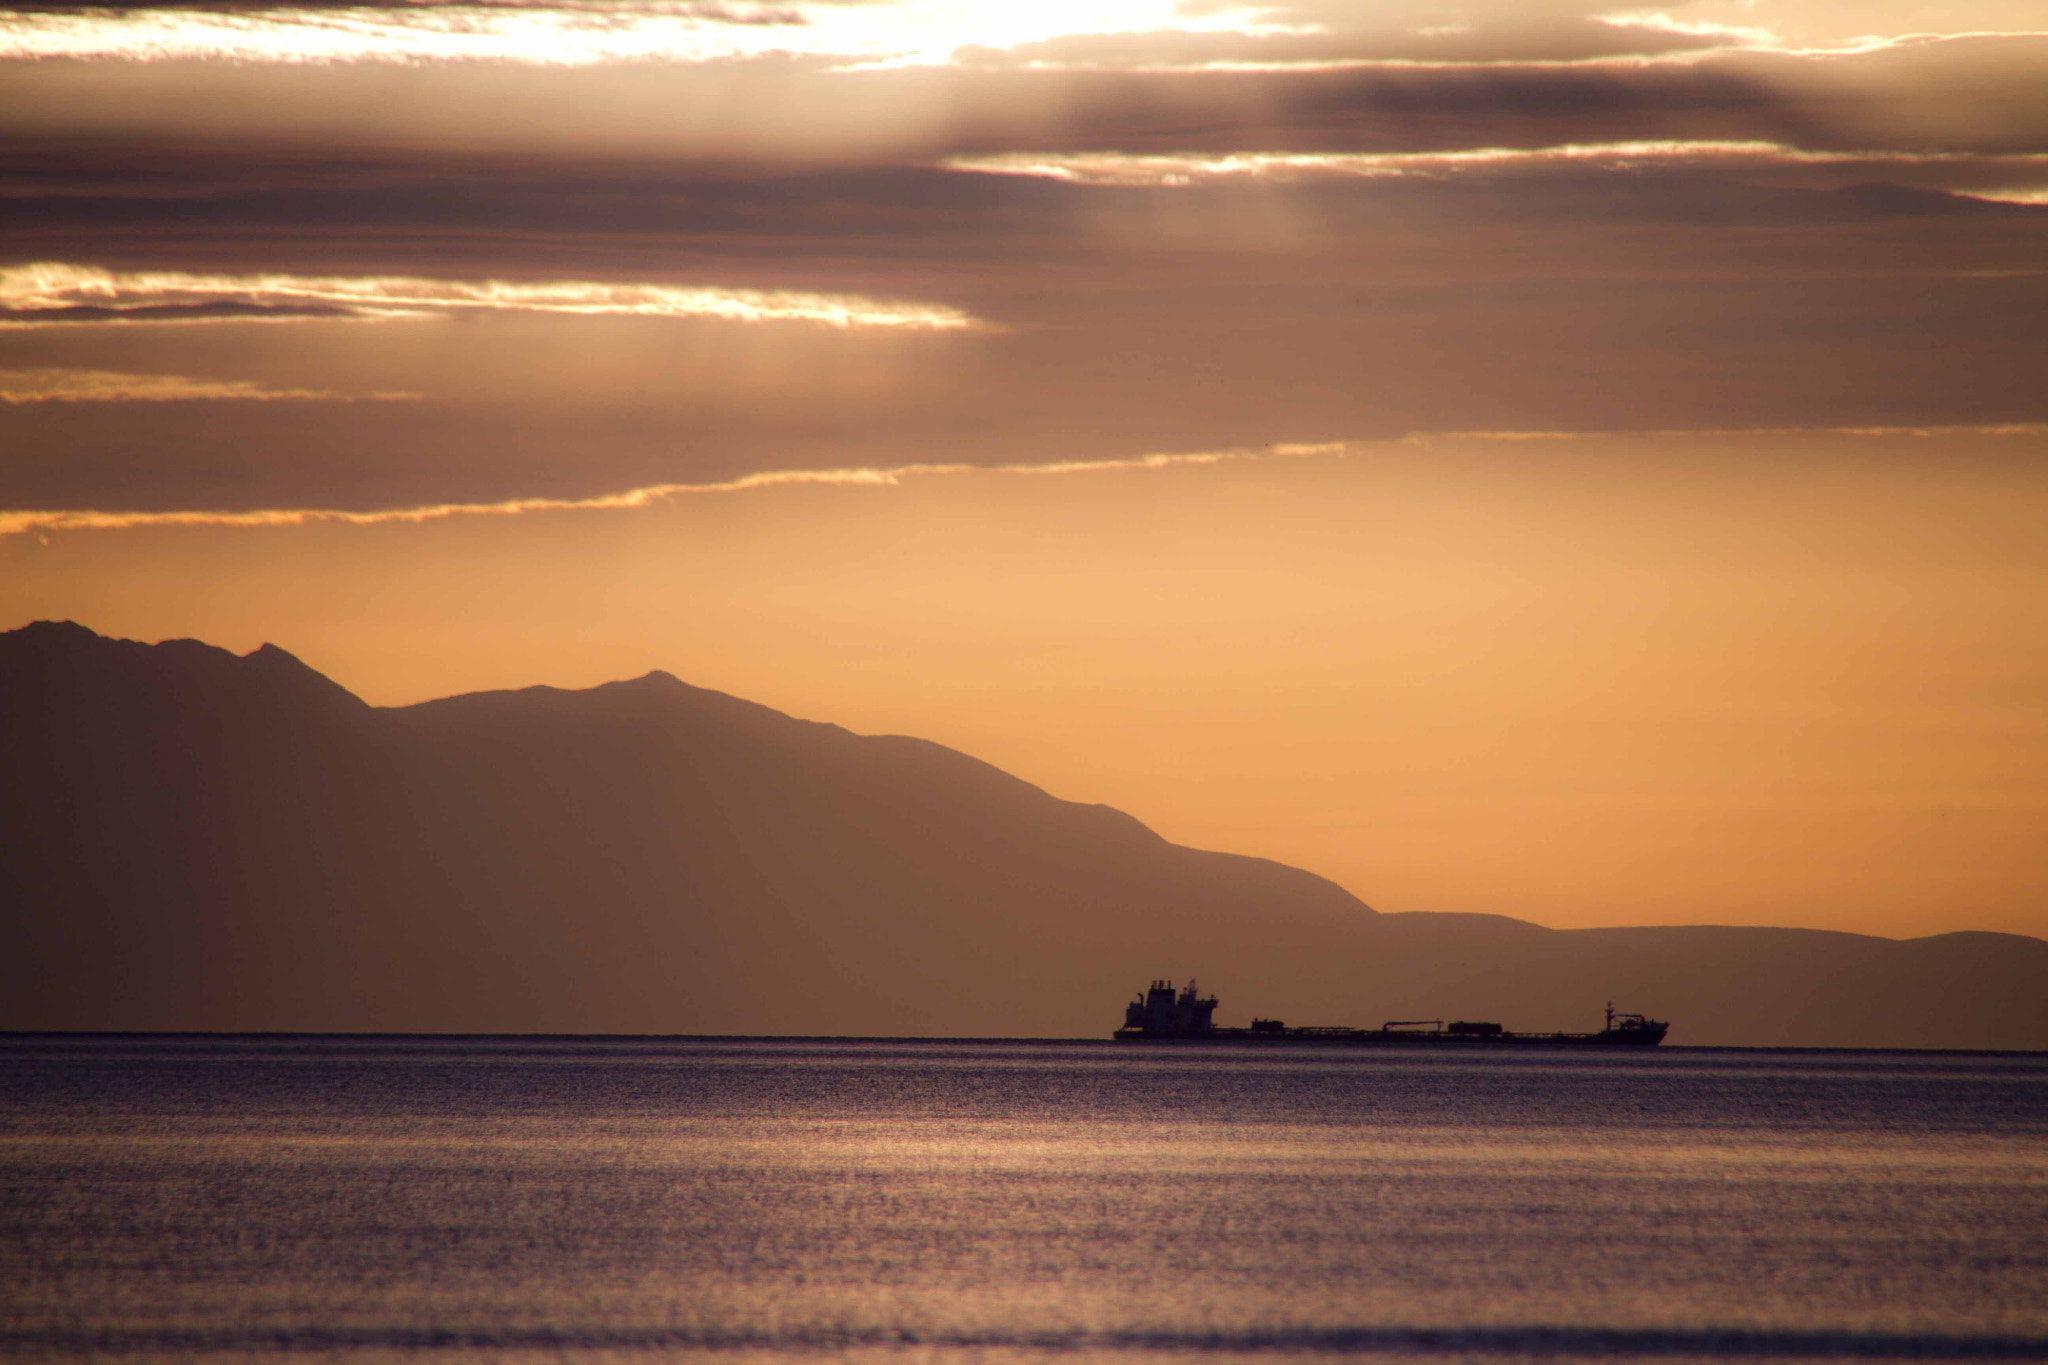 Photograph Leaving Cumbrae by Chris Gunn on 500px